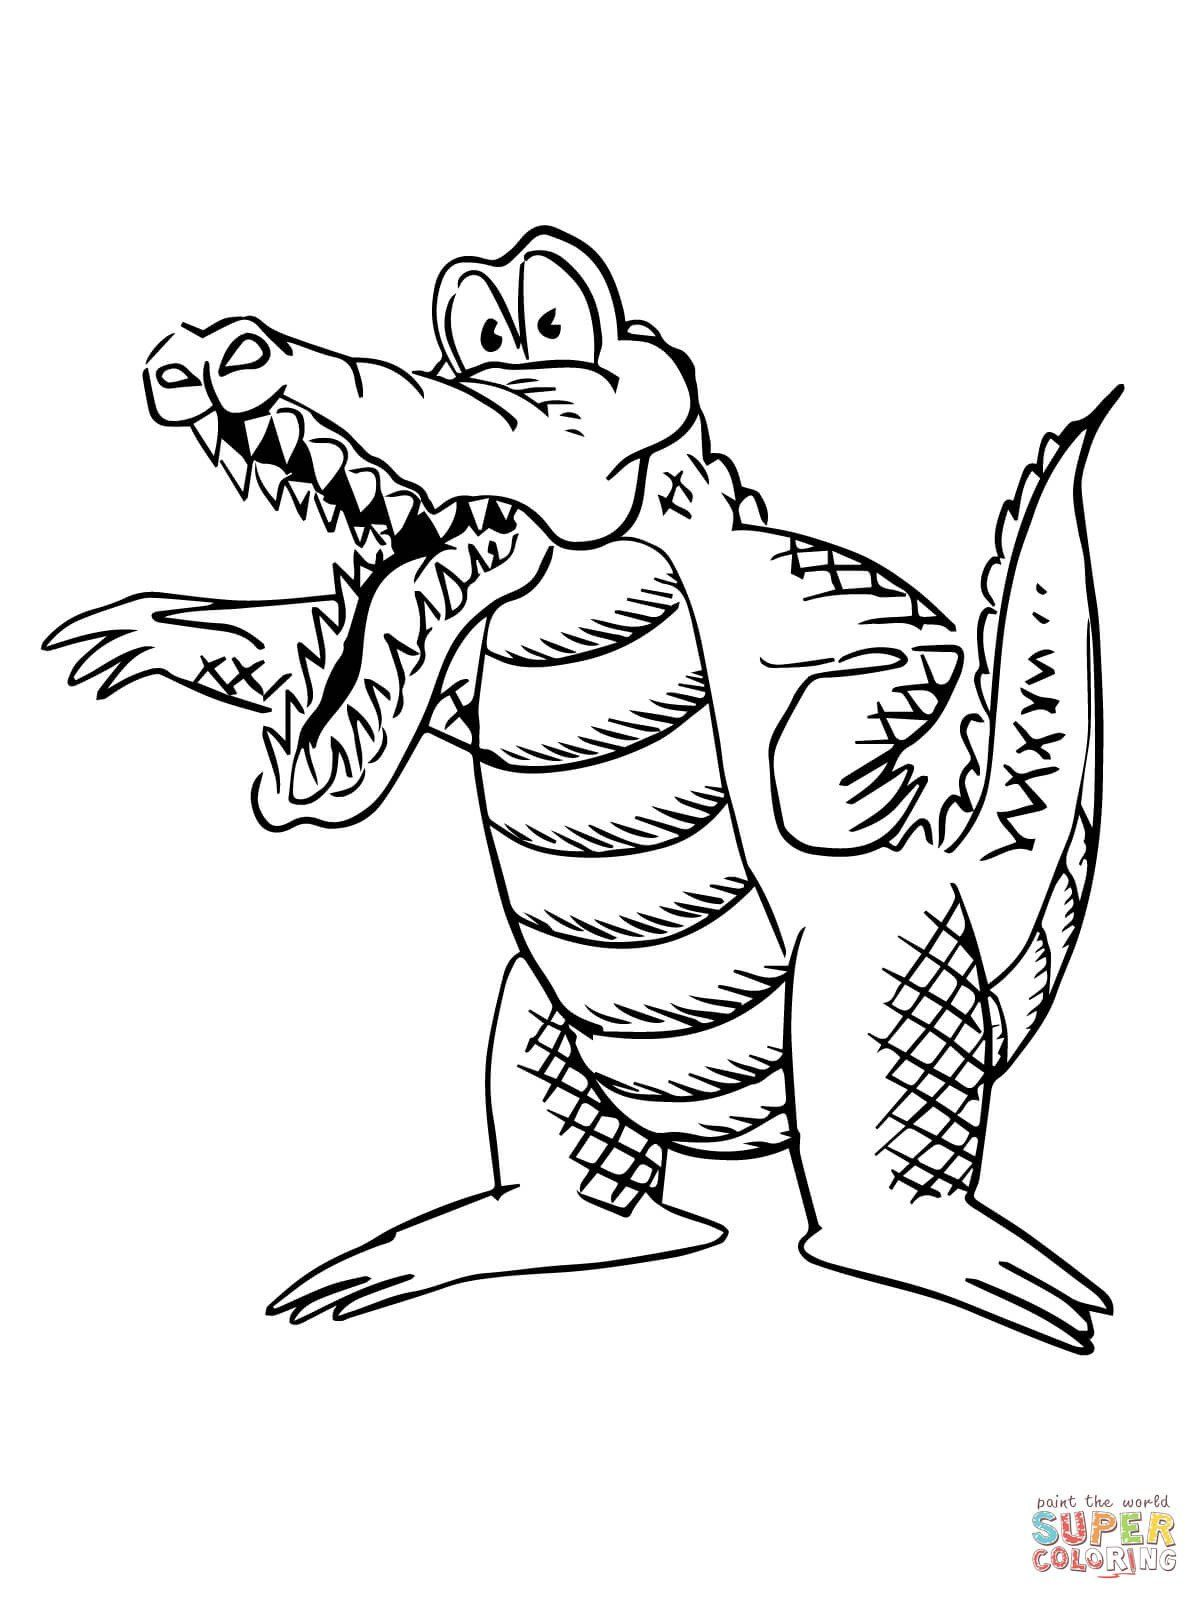 Cute Alligator Coloring Pages Cartoon Alligator Coloring Page In 2020 Cute Coloring Pages Deer Coloring Pages Coloring Pages